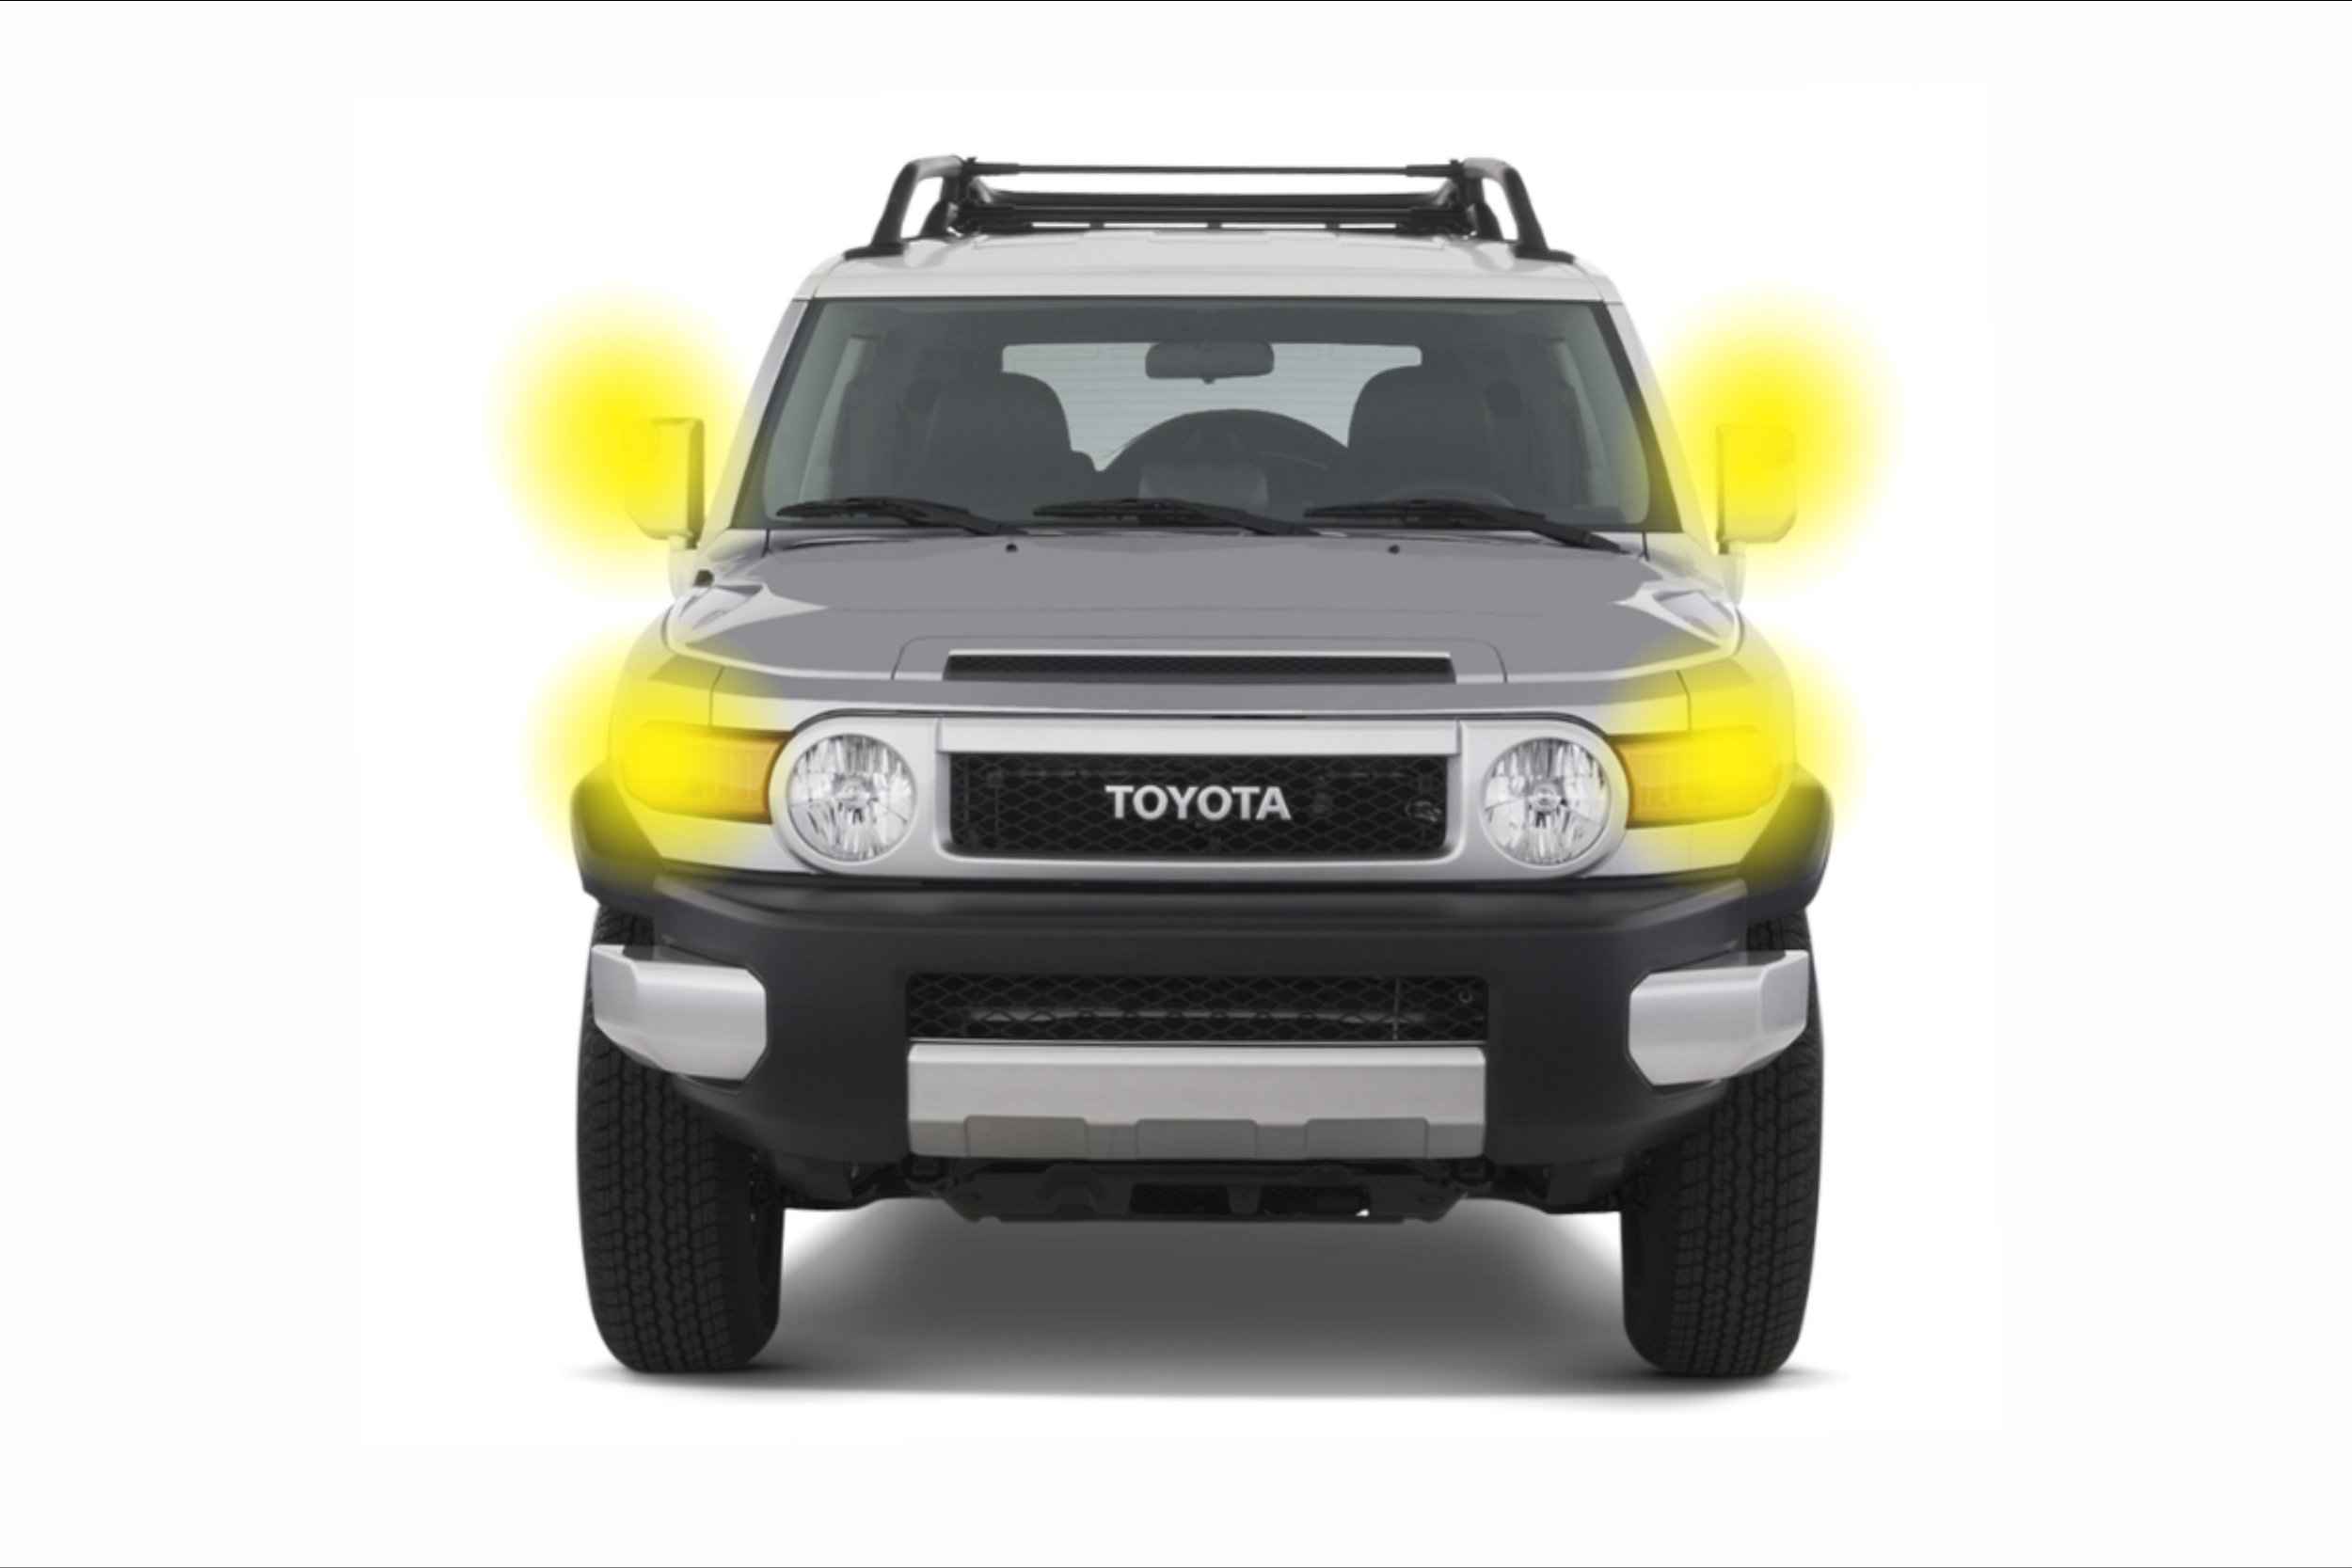 2007 2014 Toyota Fj Cruiser The Hid Factory